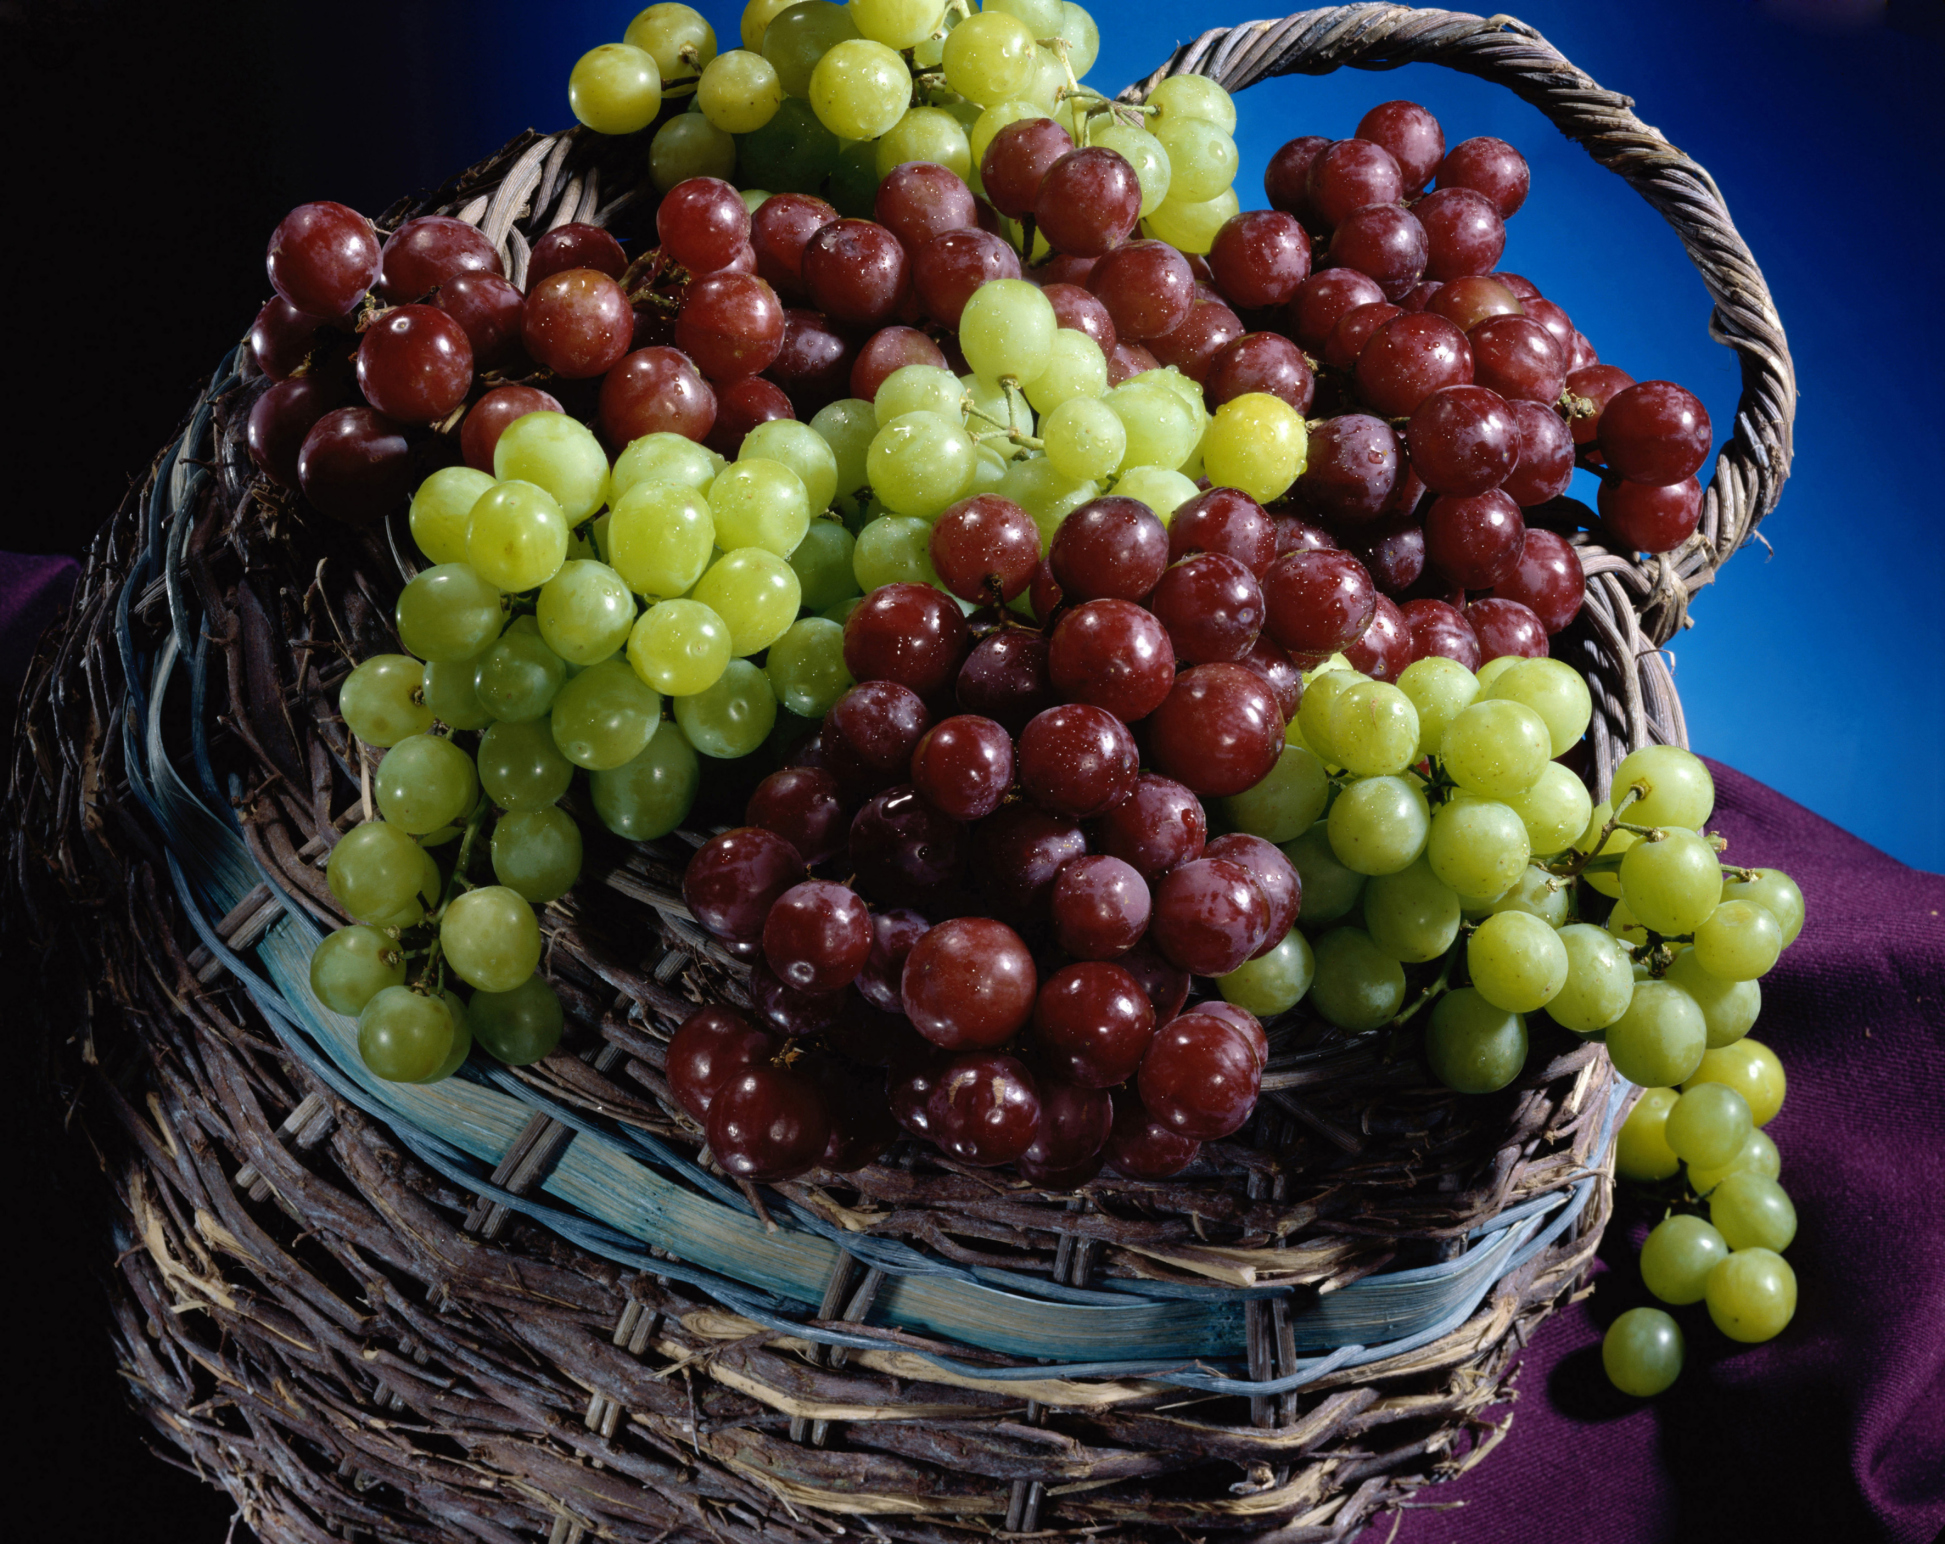 Is it possible to eat grapes while losing weight How many calories per 100 grams of grapes